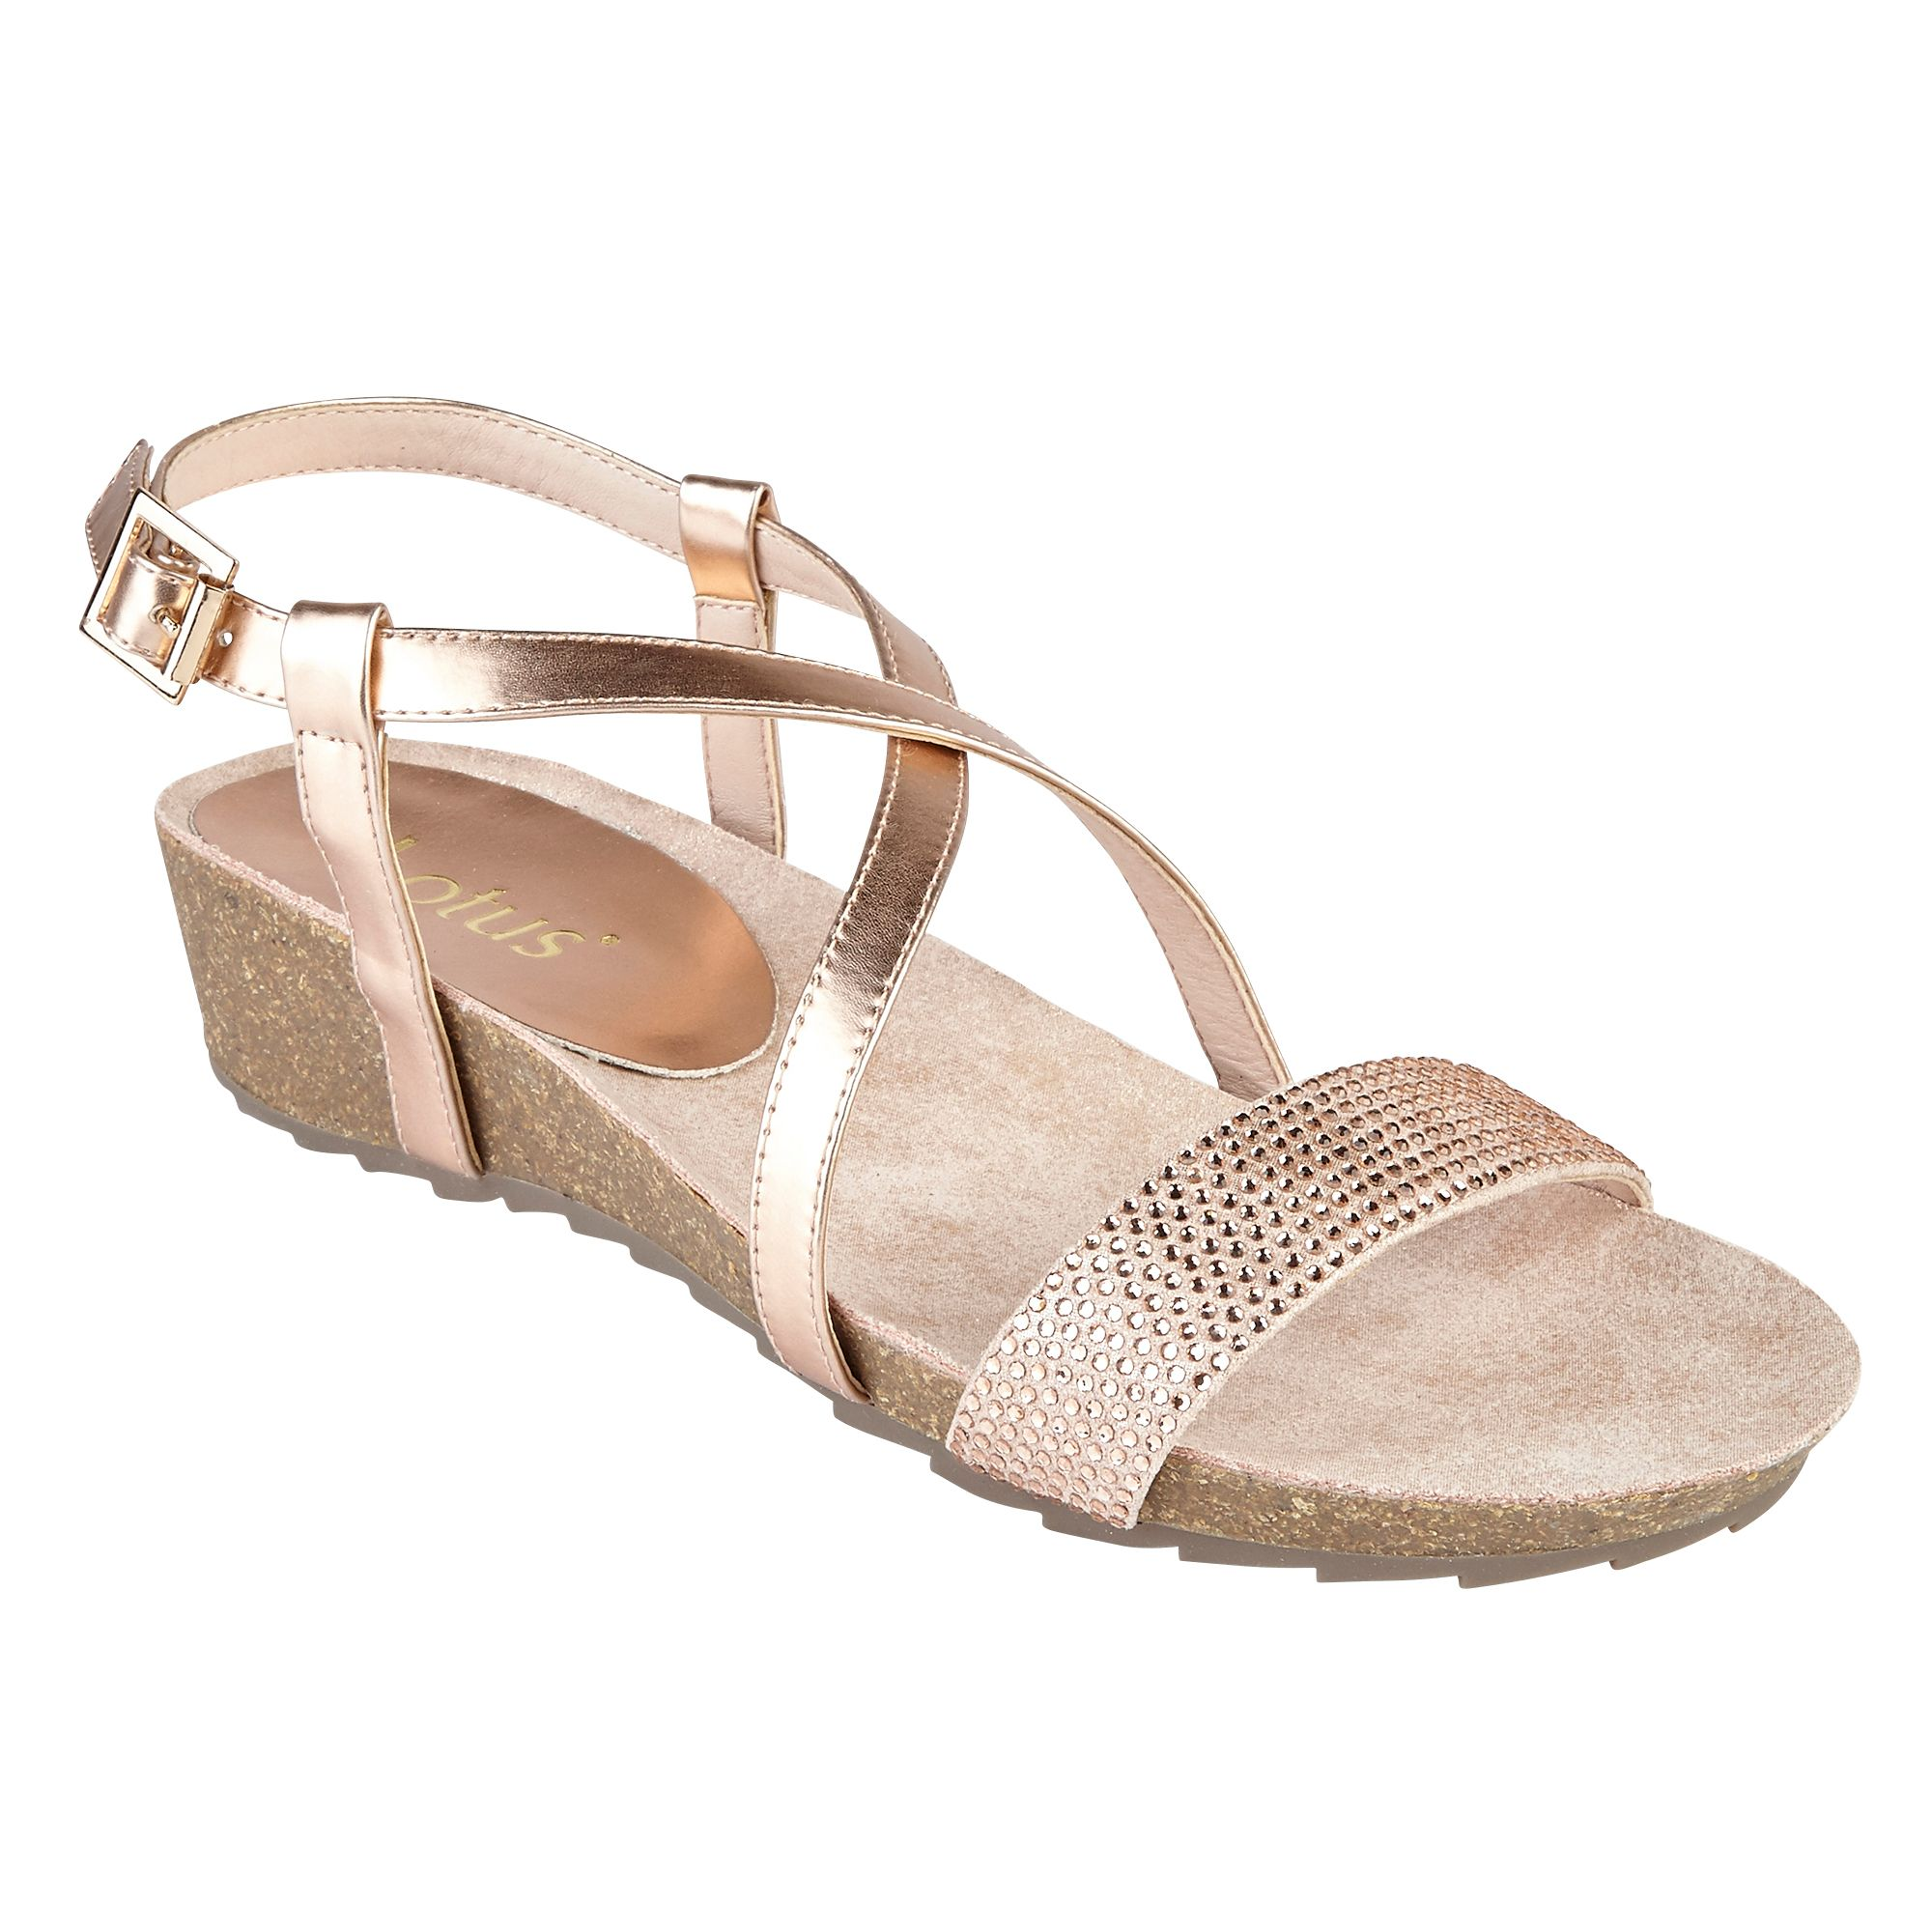 Lotus Cuba Strappy Sandals, Rose Gold